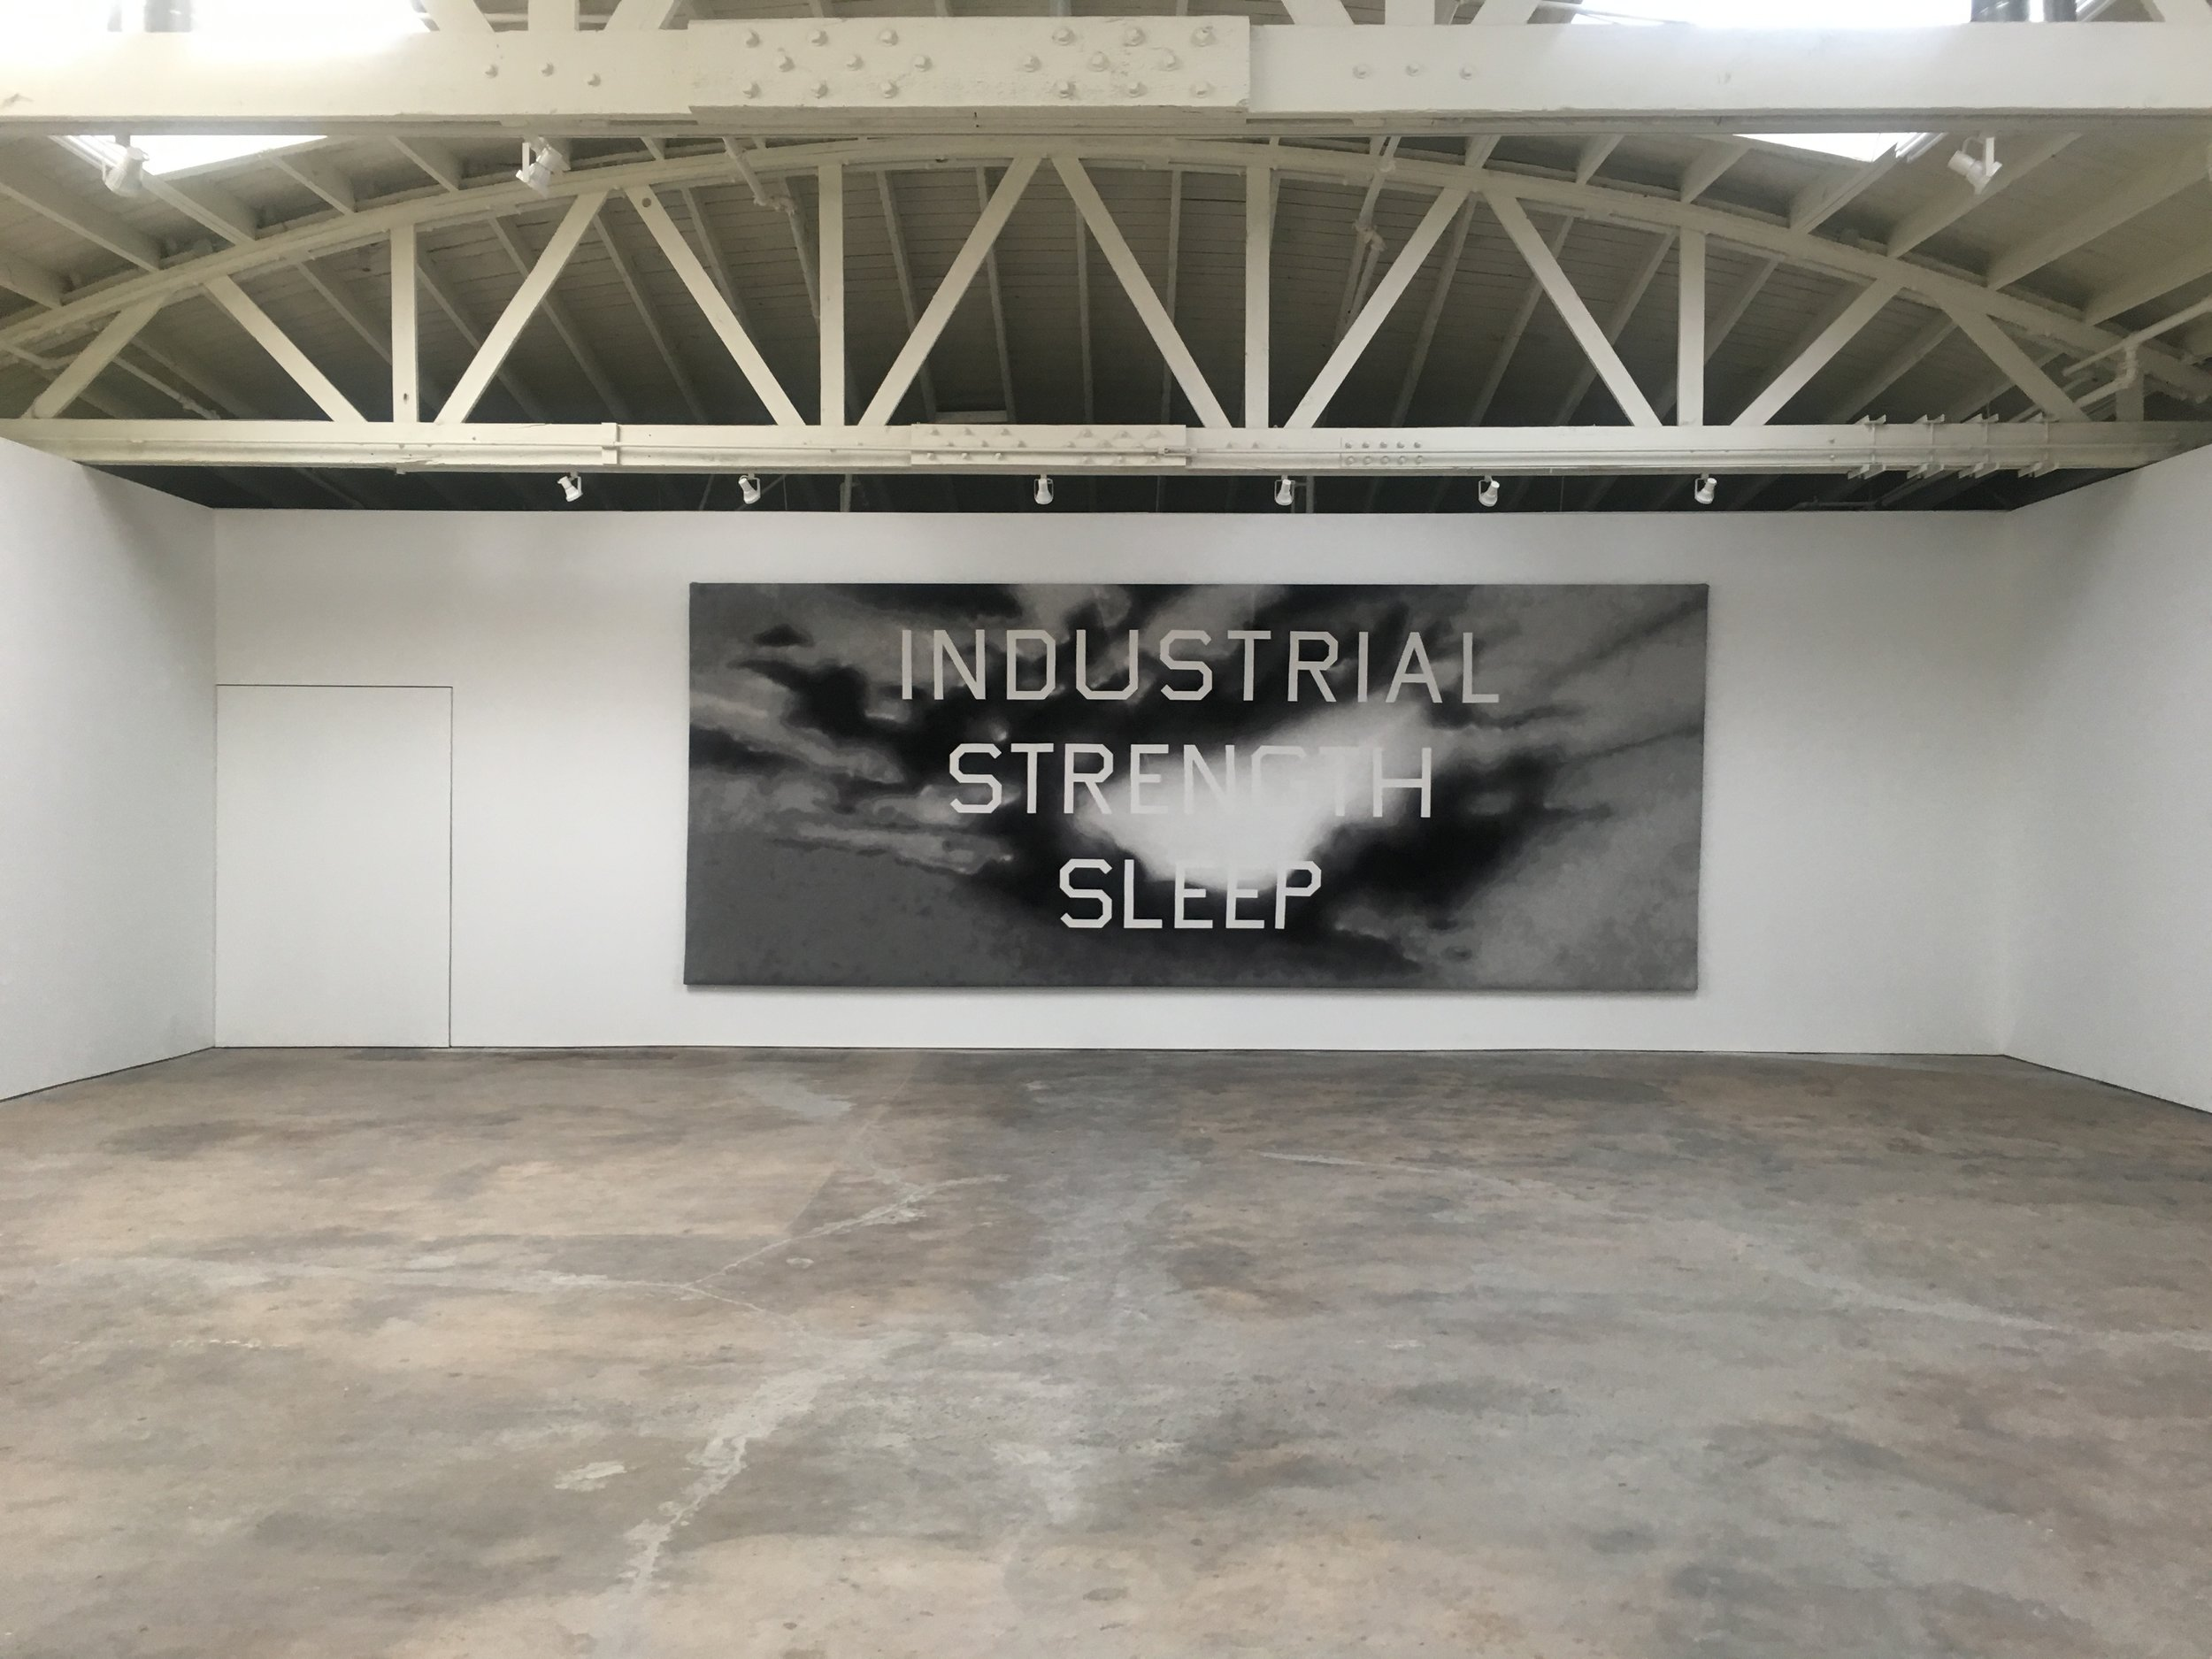 Wonderful to see this work by Ed Ruscha at the new  IBID gallery . It is part of Sleep curated by Paolo Colombo featuring Ed Ruscha,Felix Gonzalez-Torres,Jorge Macchi,Janis Avotinš,Rosemarie Trockel,Robert Gober, and Paul Thek. Also in the gallery is Devin Farrand's gorgeous solo show Heft and a solo show of work by David Adamo. The whole space is dreamy, I am happy they moved to the neighborhood.(Pictured at the very top of the page is my coworker, artist  Jenn Tang ,in a pre-shift zen moment in front of Glen Ligon's Double America at The Broad.)